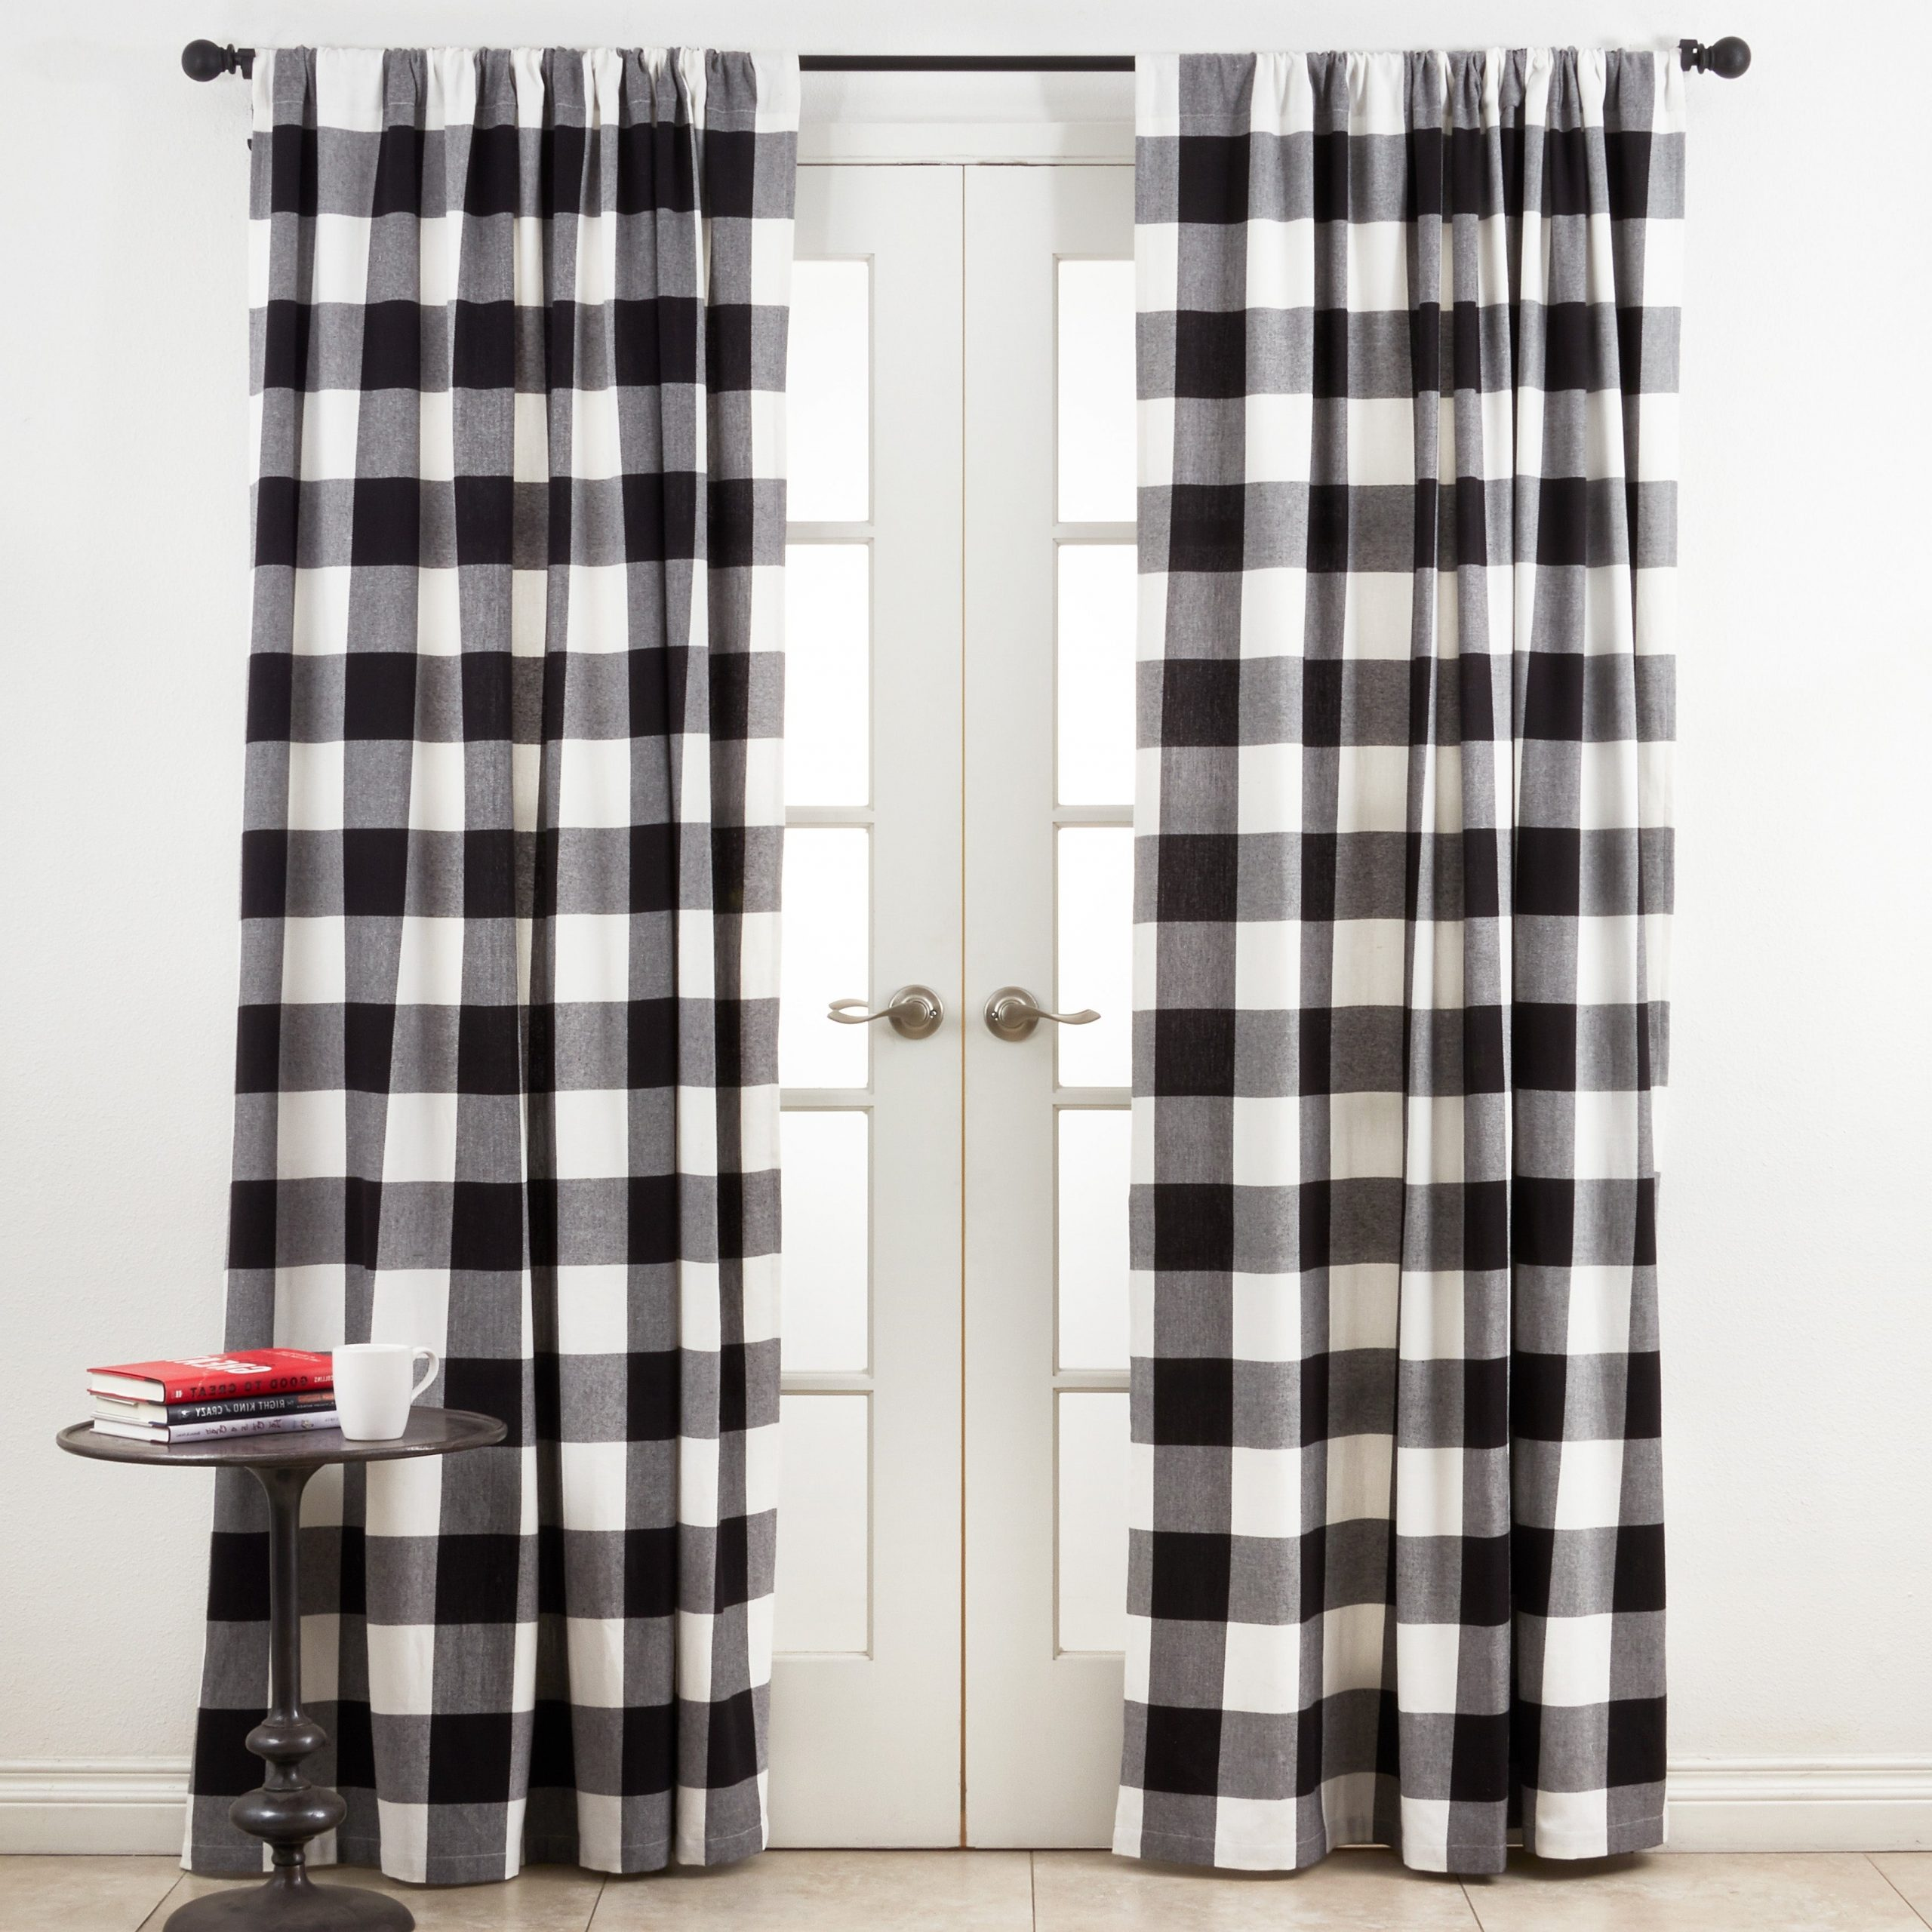 Cotton Buffalo Plaid Curtains With 2021 Grainger Buffalo Check Blackout Window Curtains (View 8 of 20)